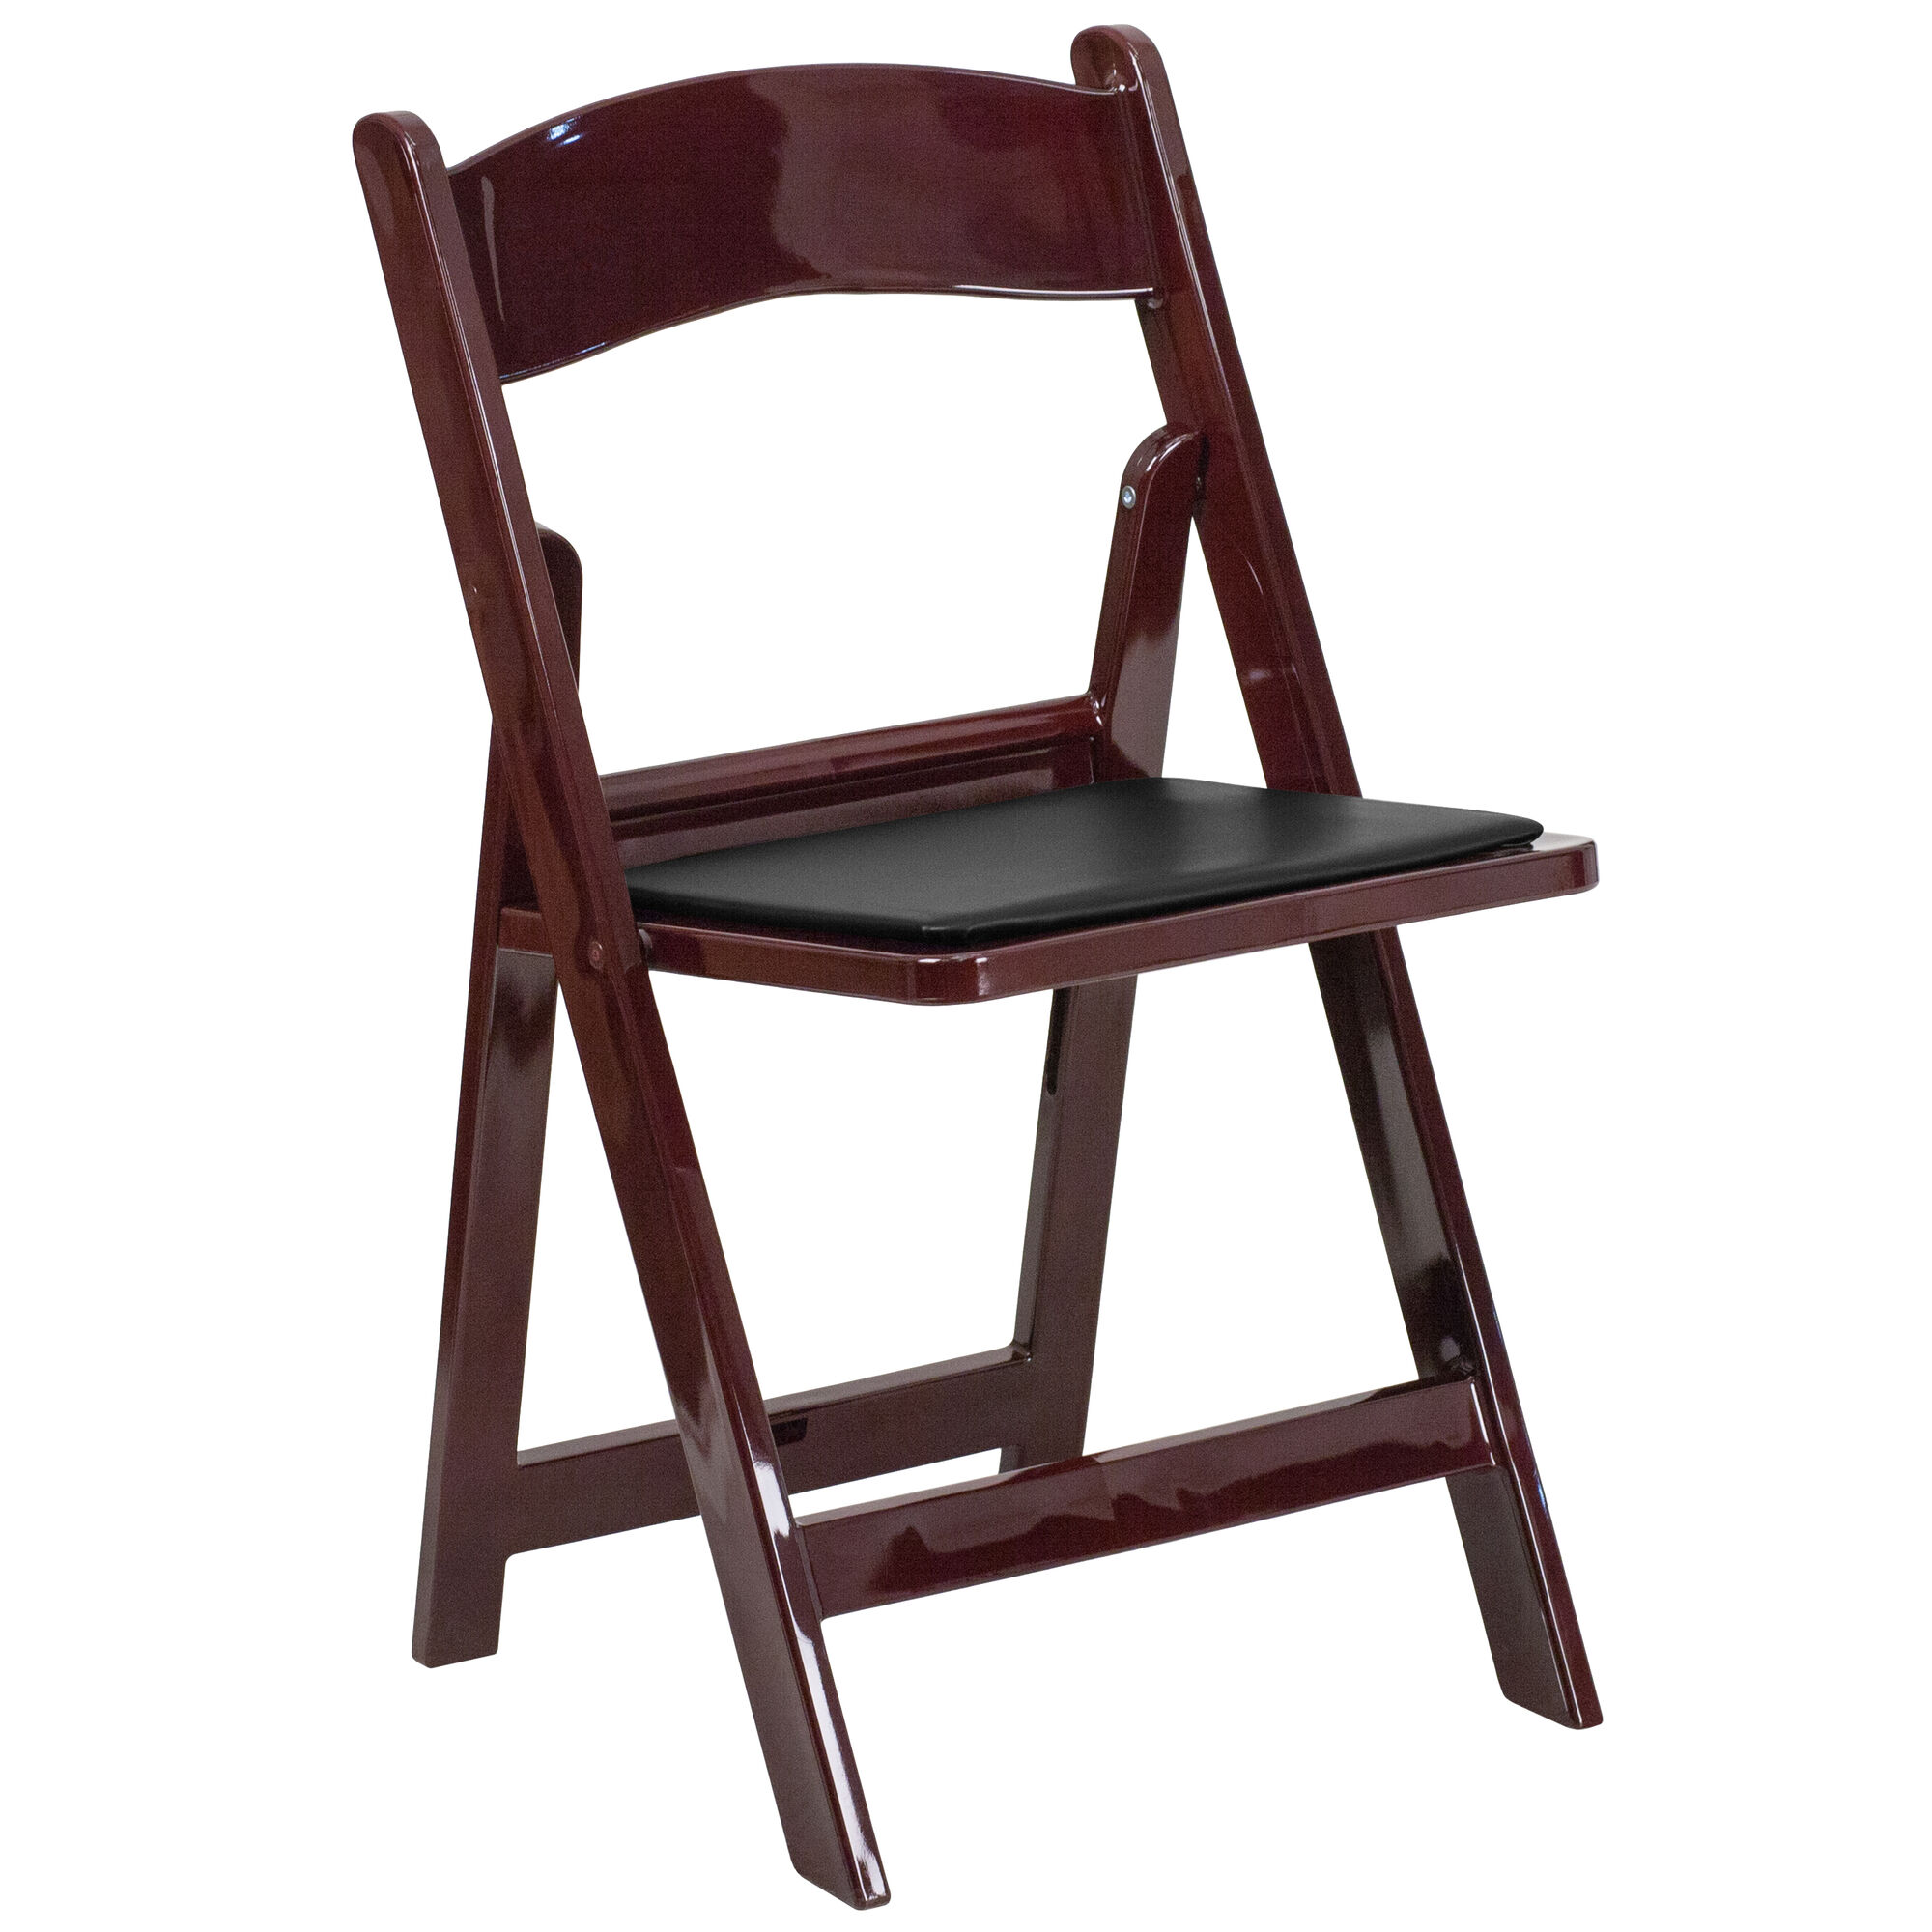 Folding Chairs at low bud prices